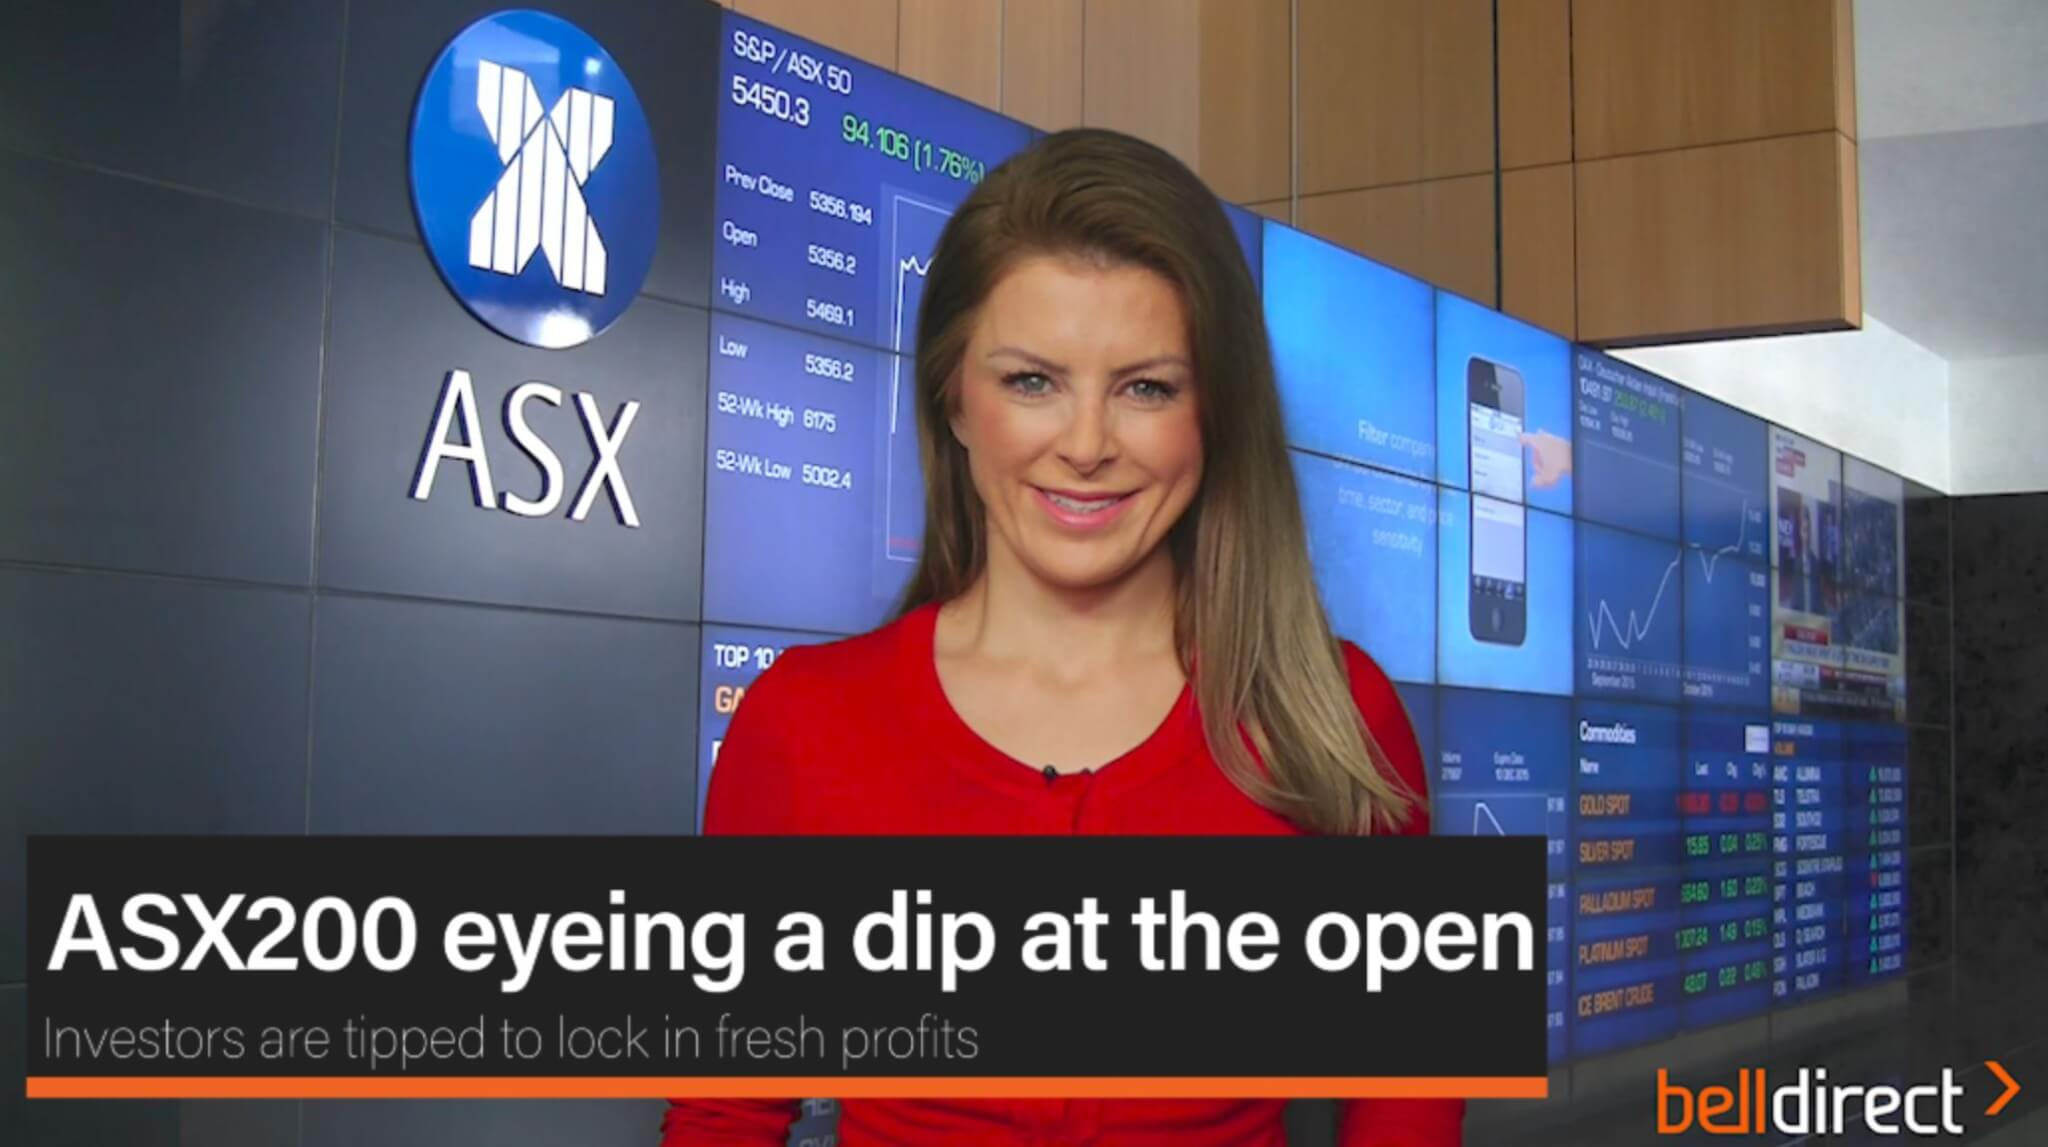 ASX200 eyeing a dip at the open